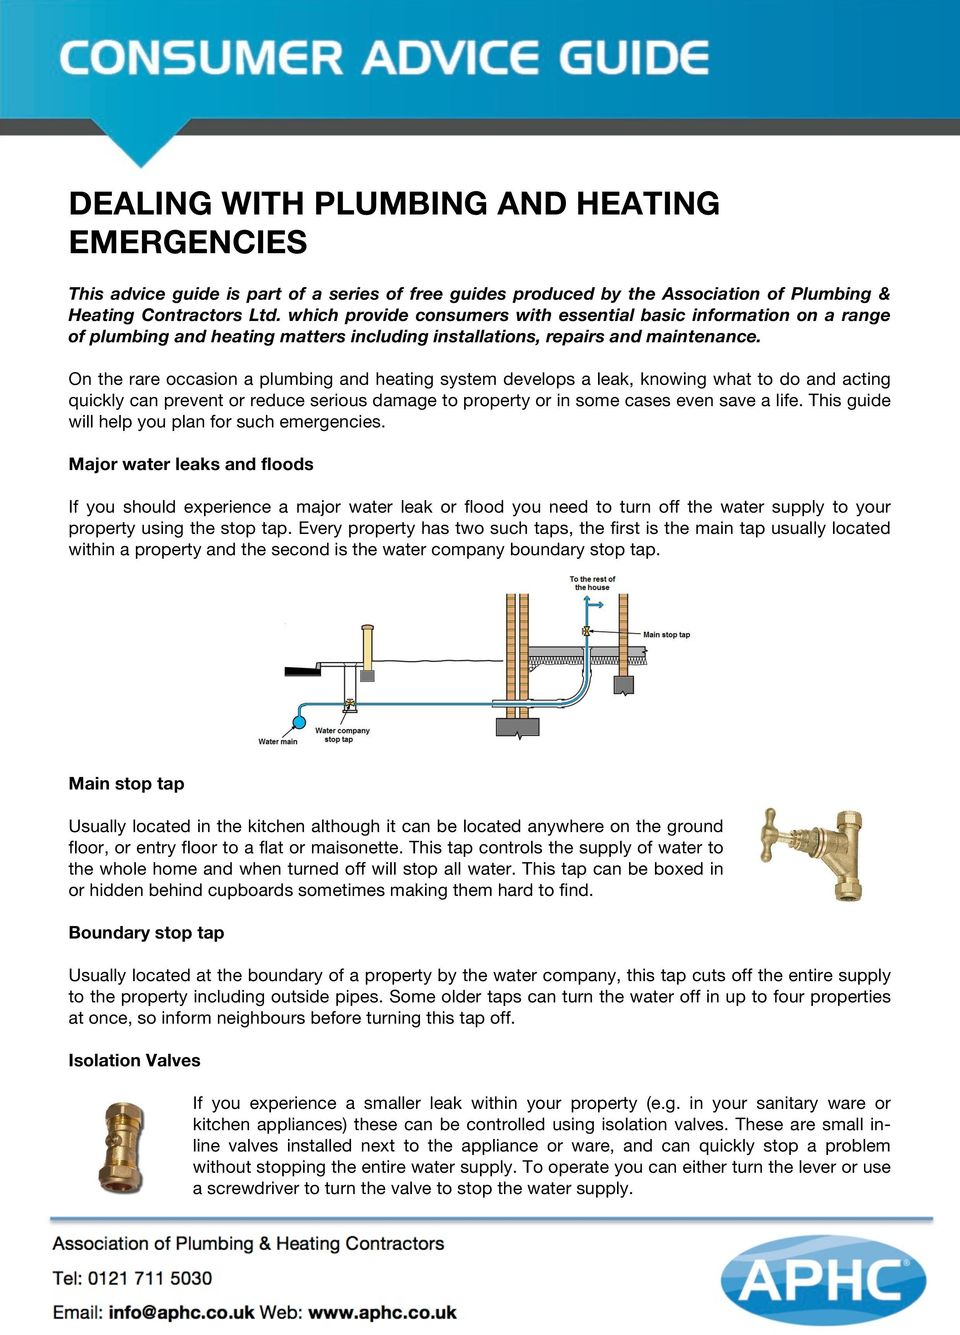 On the rare occasion a plumbing and heating system develops a leak, knowing what to do and acting quickly can prevent or reduce serious damage to property or in some cases even save a life.